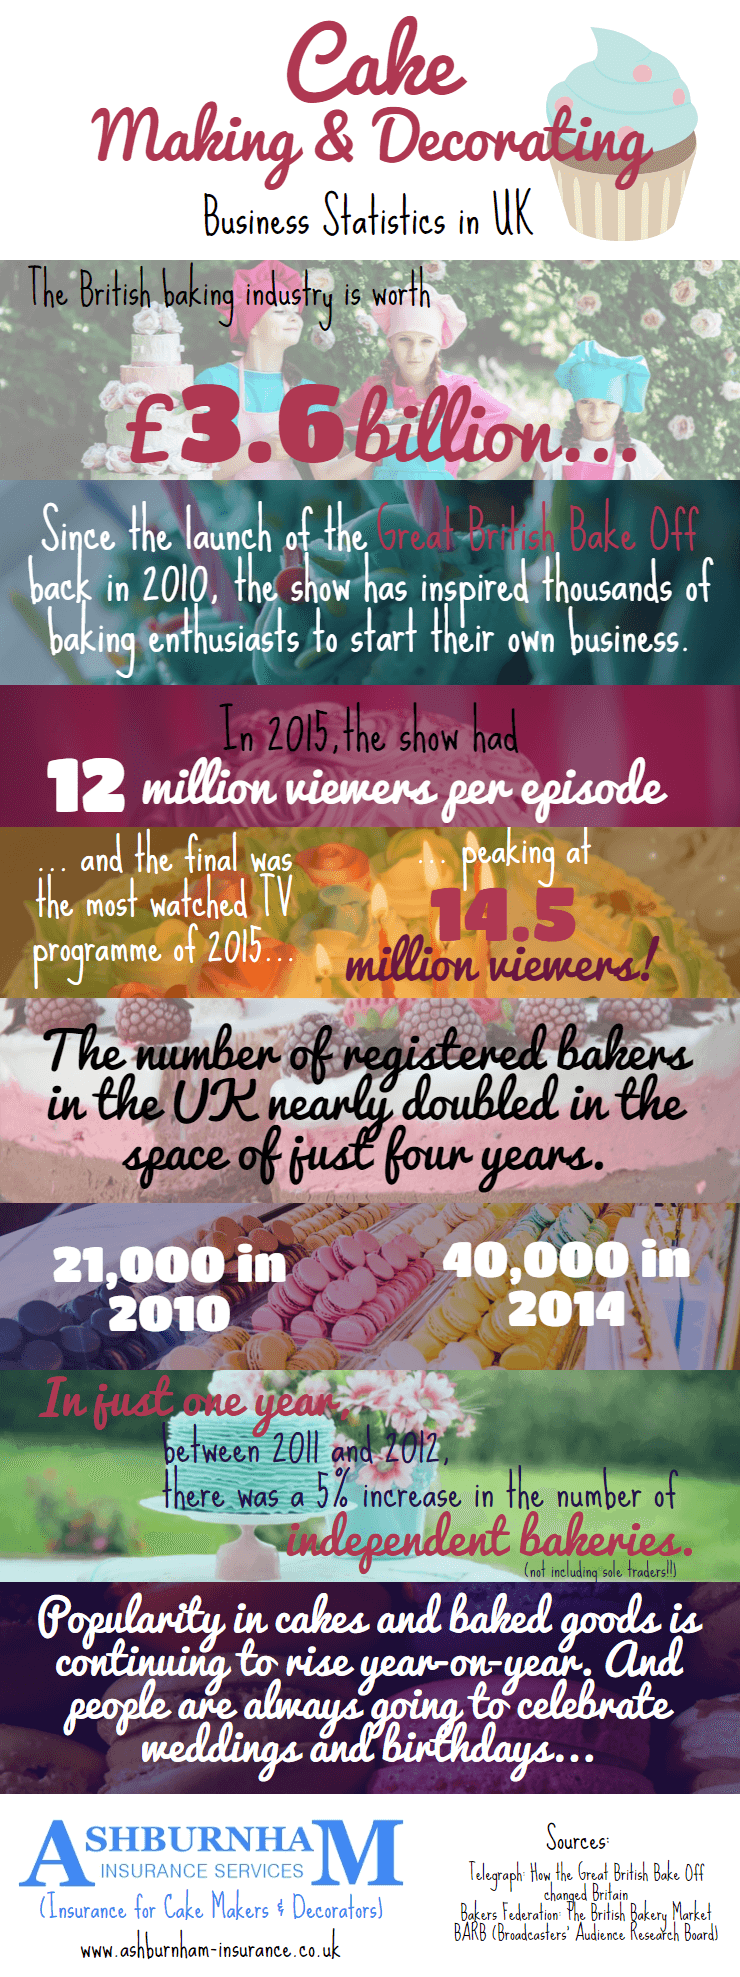 Cake Making & Decorating Business Statistics in UK